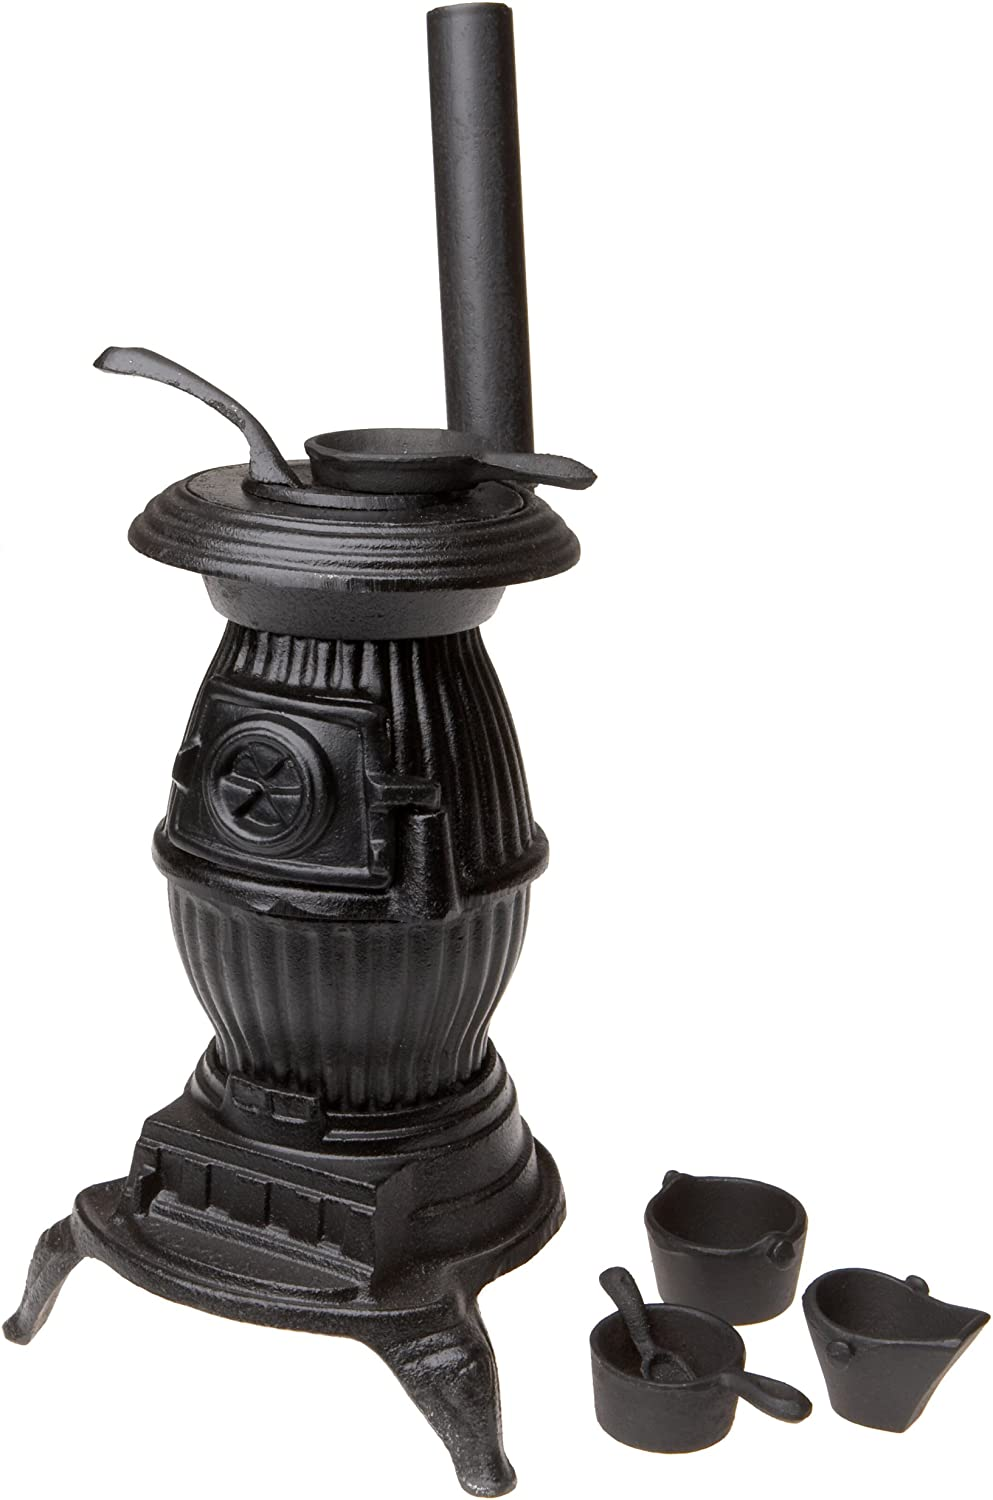 Old Mountain 10141 Black Mini Pot Belly Stove Set, with Accessories, 13 Inch Tall